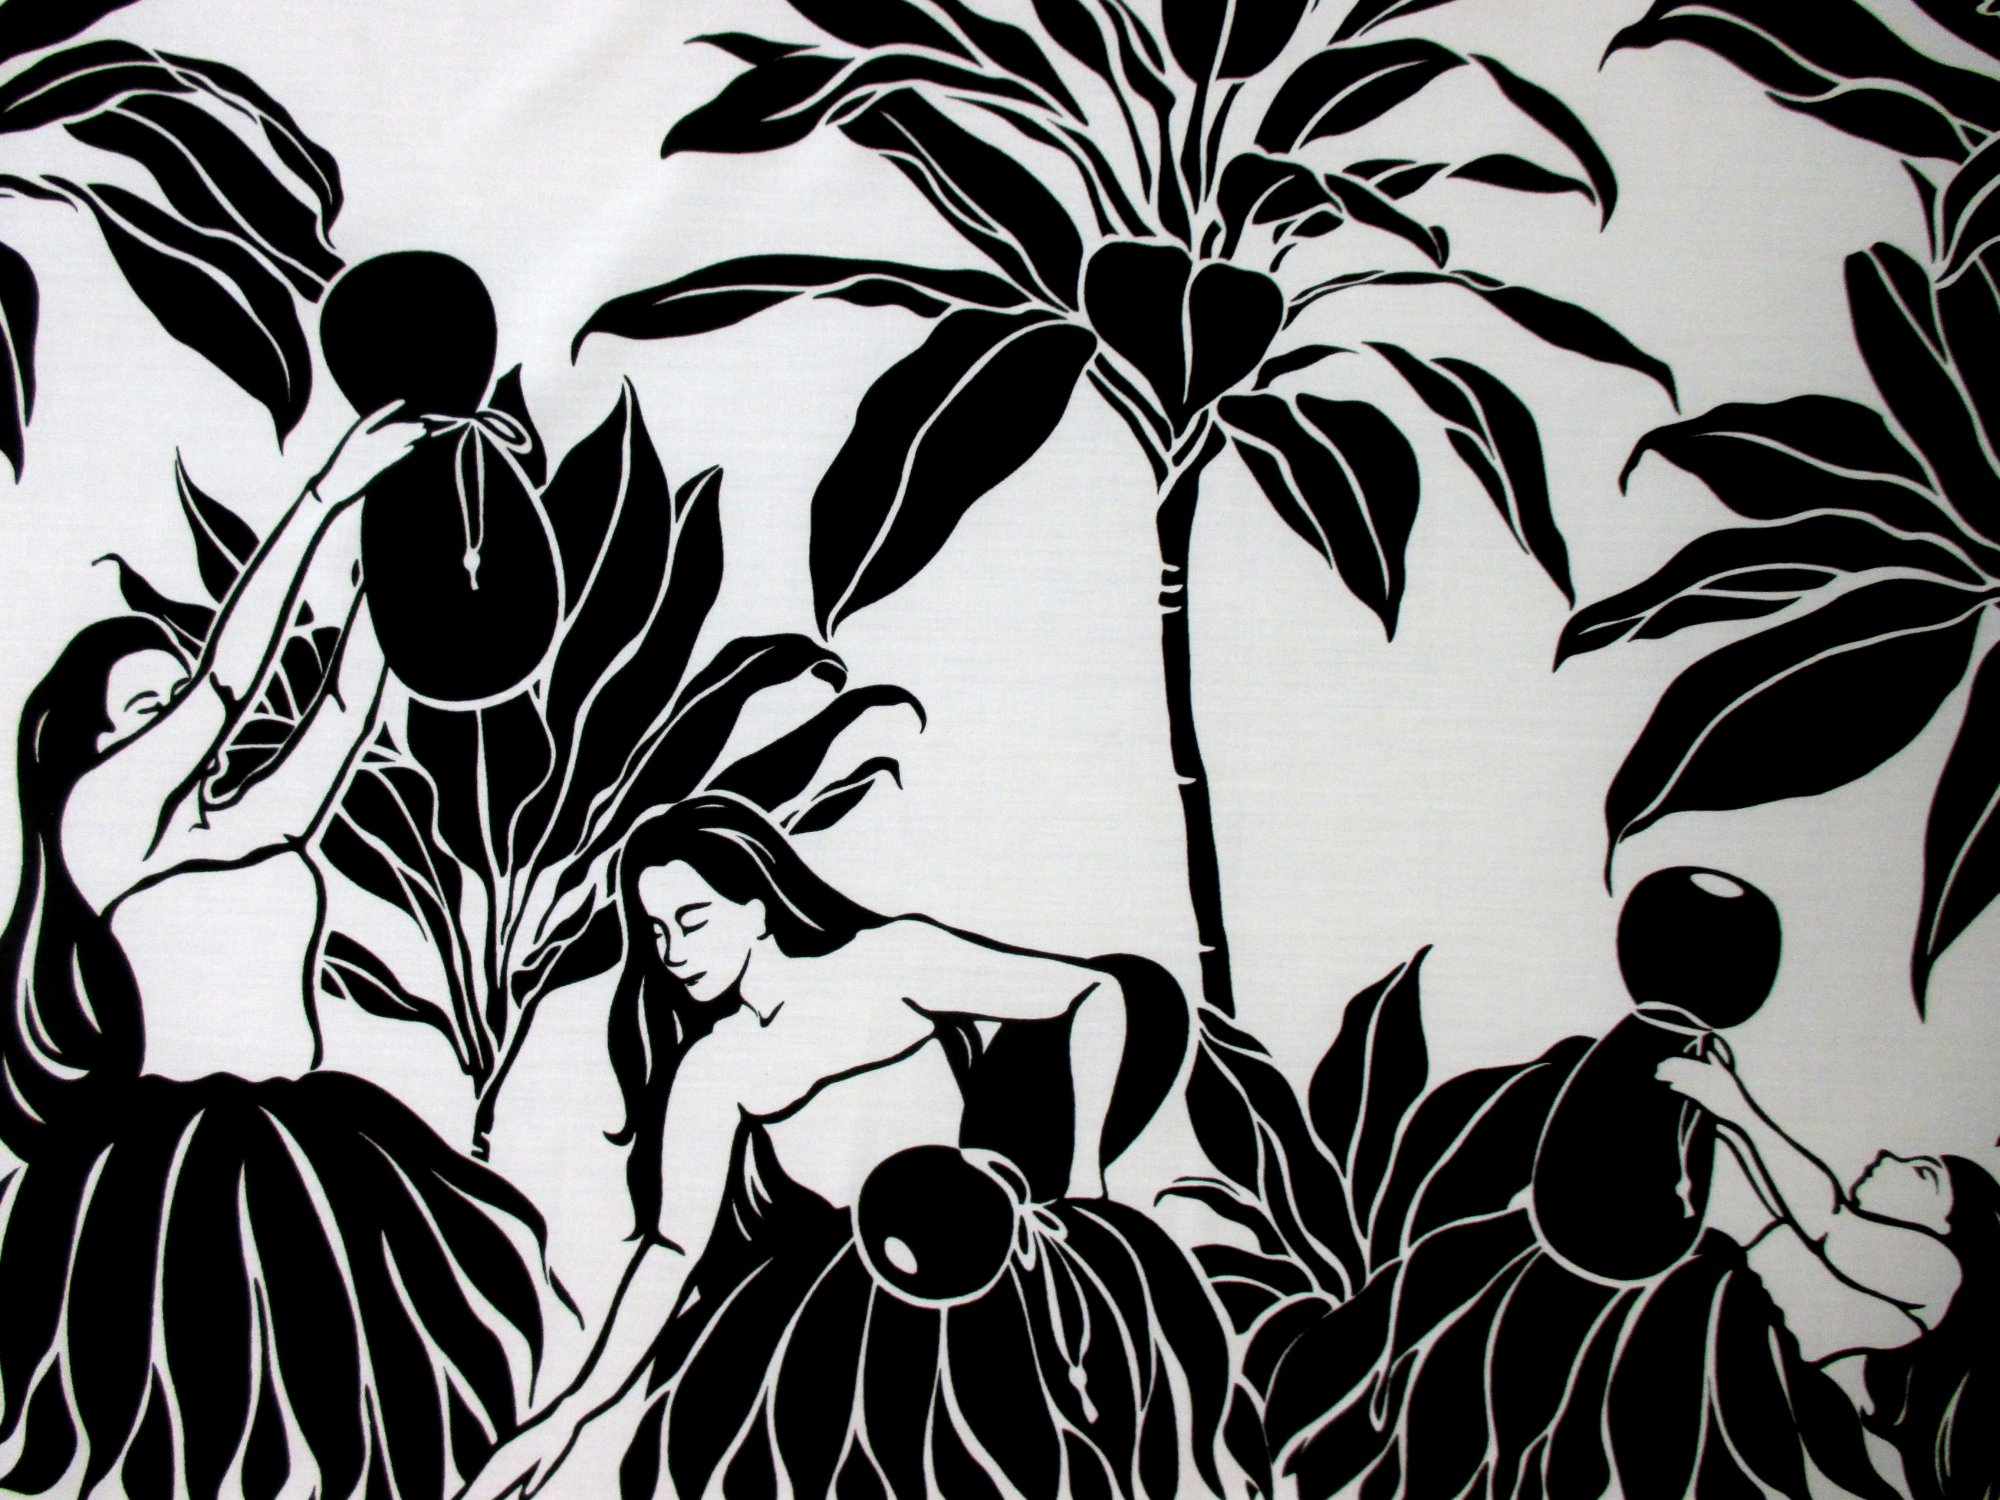 Hula Dancer Border Print - White/Black